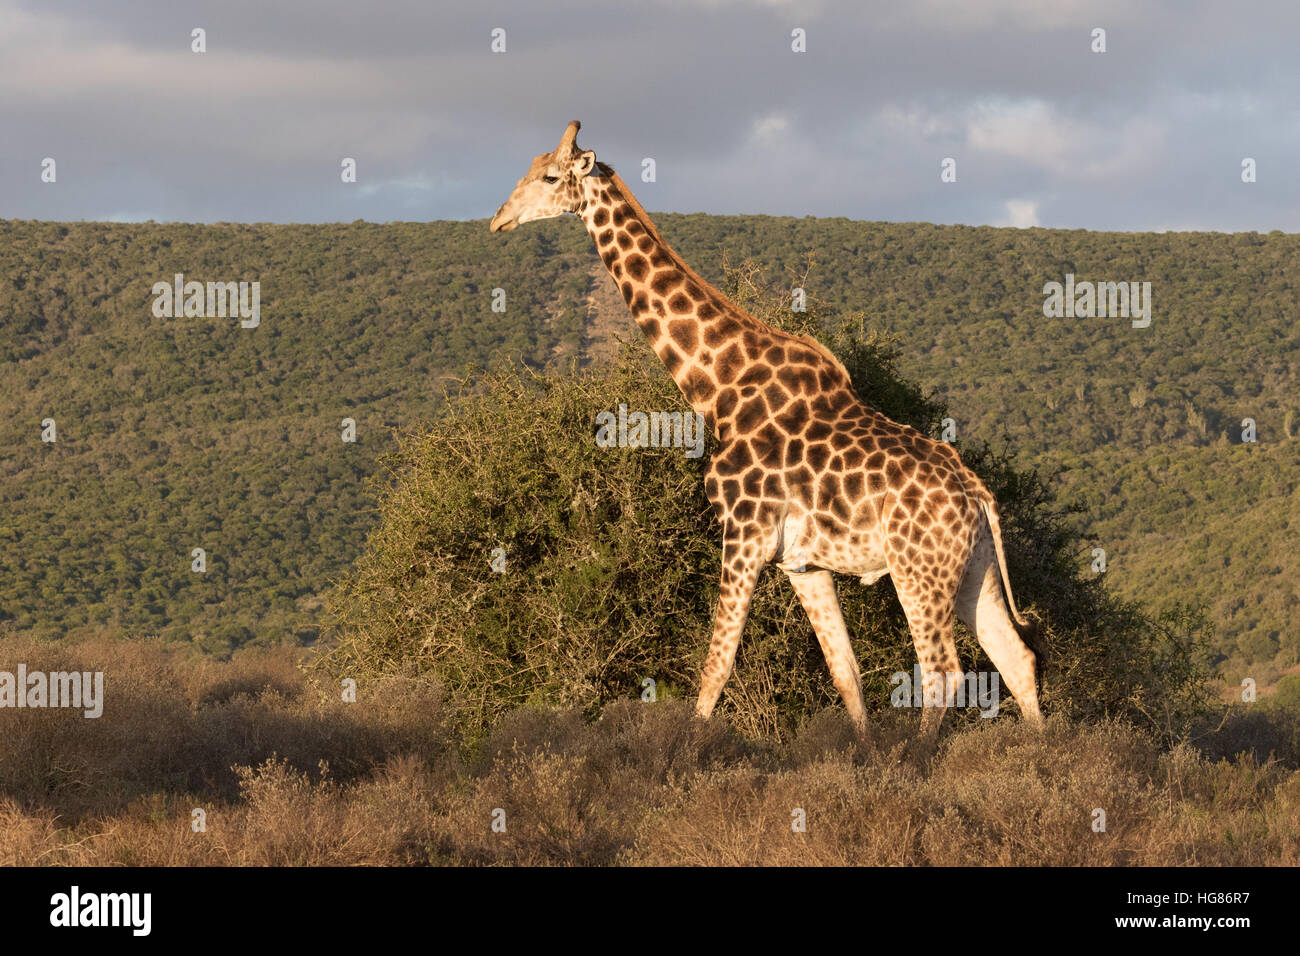 Adultes sauvages ( Girafe Girafe Sud, Giraffa Giraffa), Afrique du Sud Photo Stock